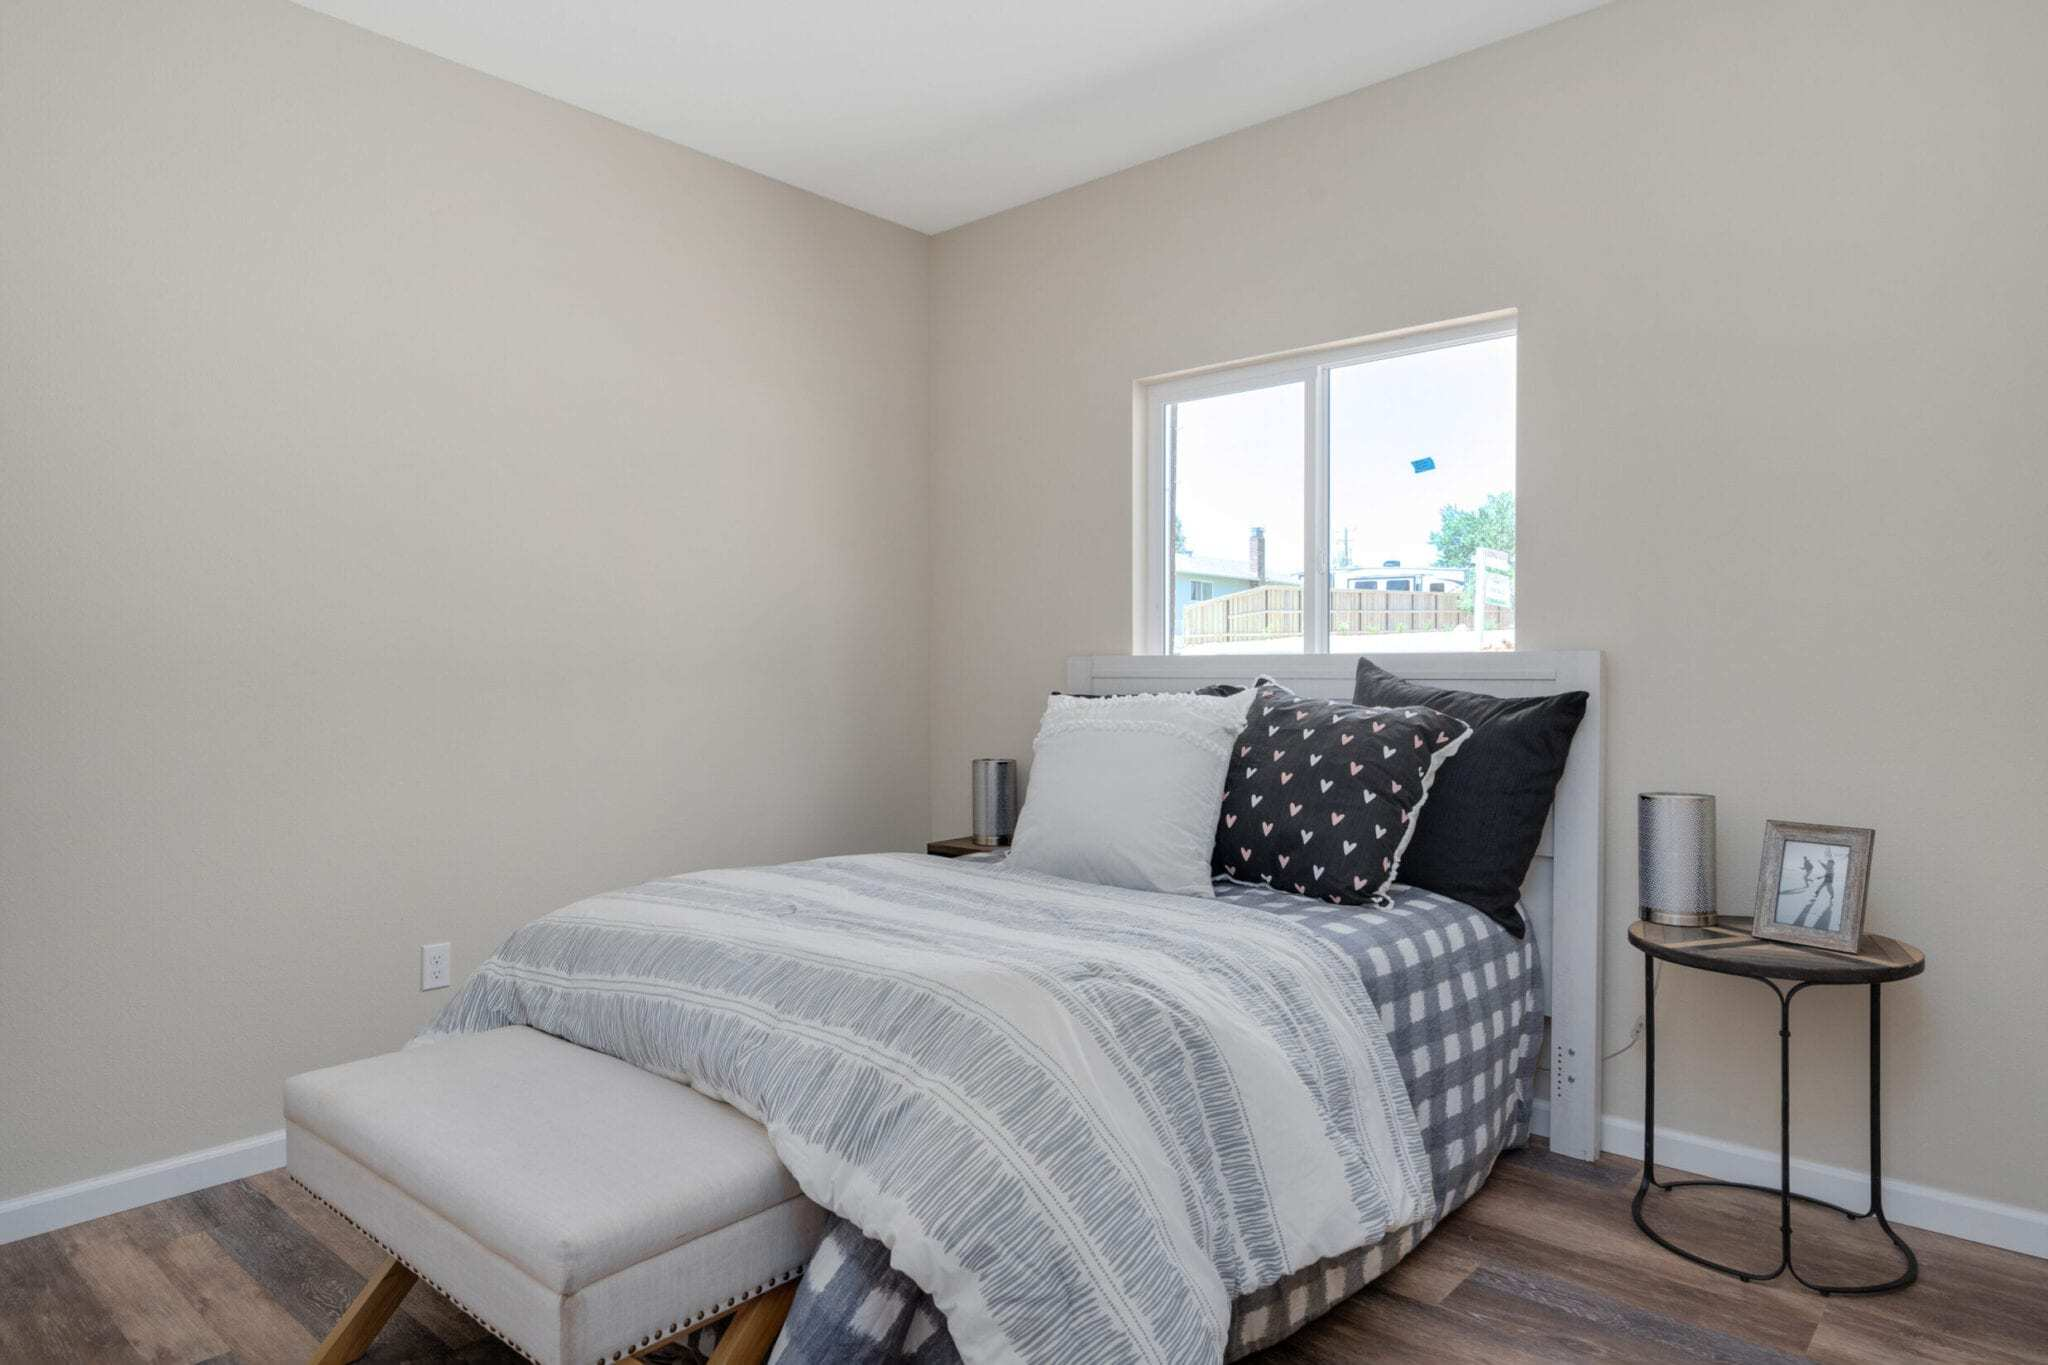 Bedroom featured in the 1488 Bille Rd By Silvermark Luxury Homes in Chico, CA